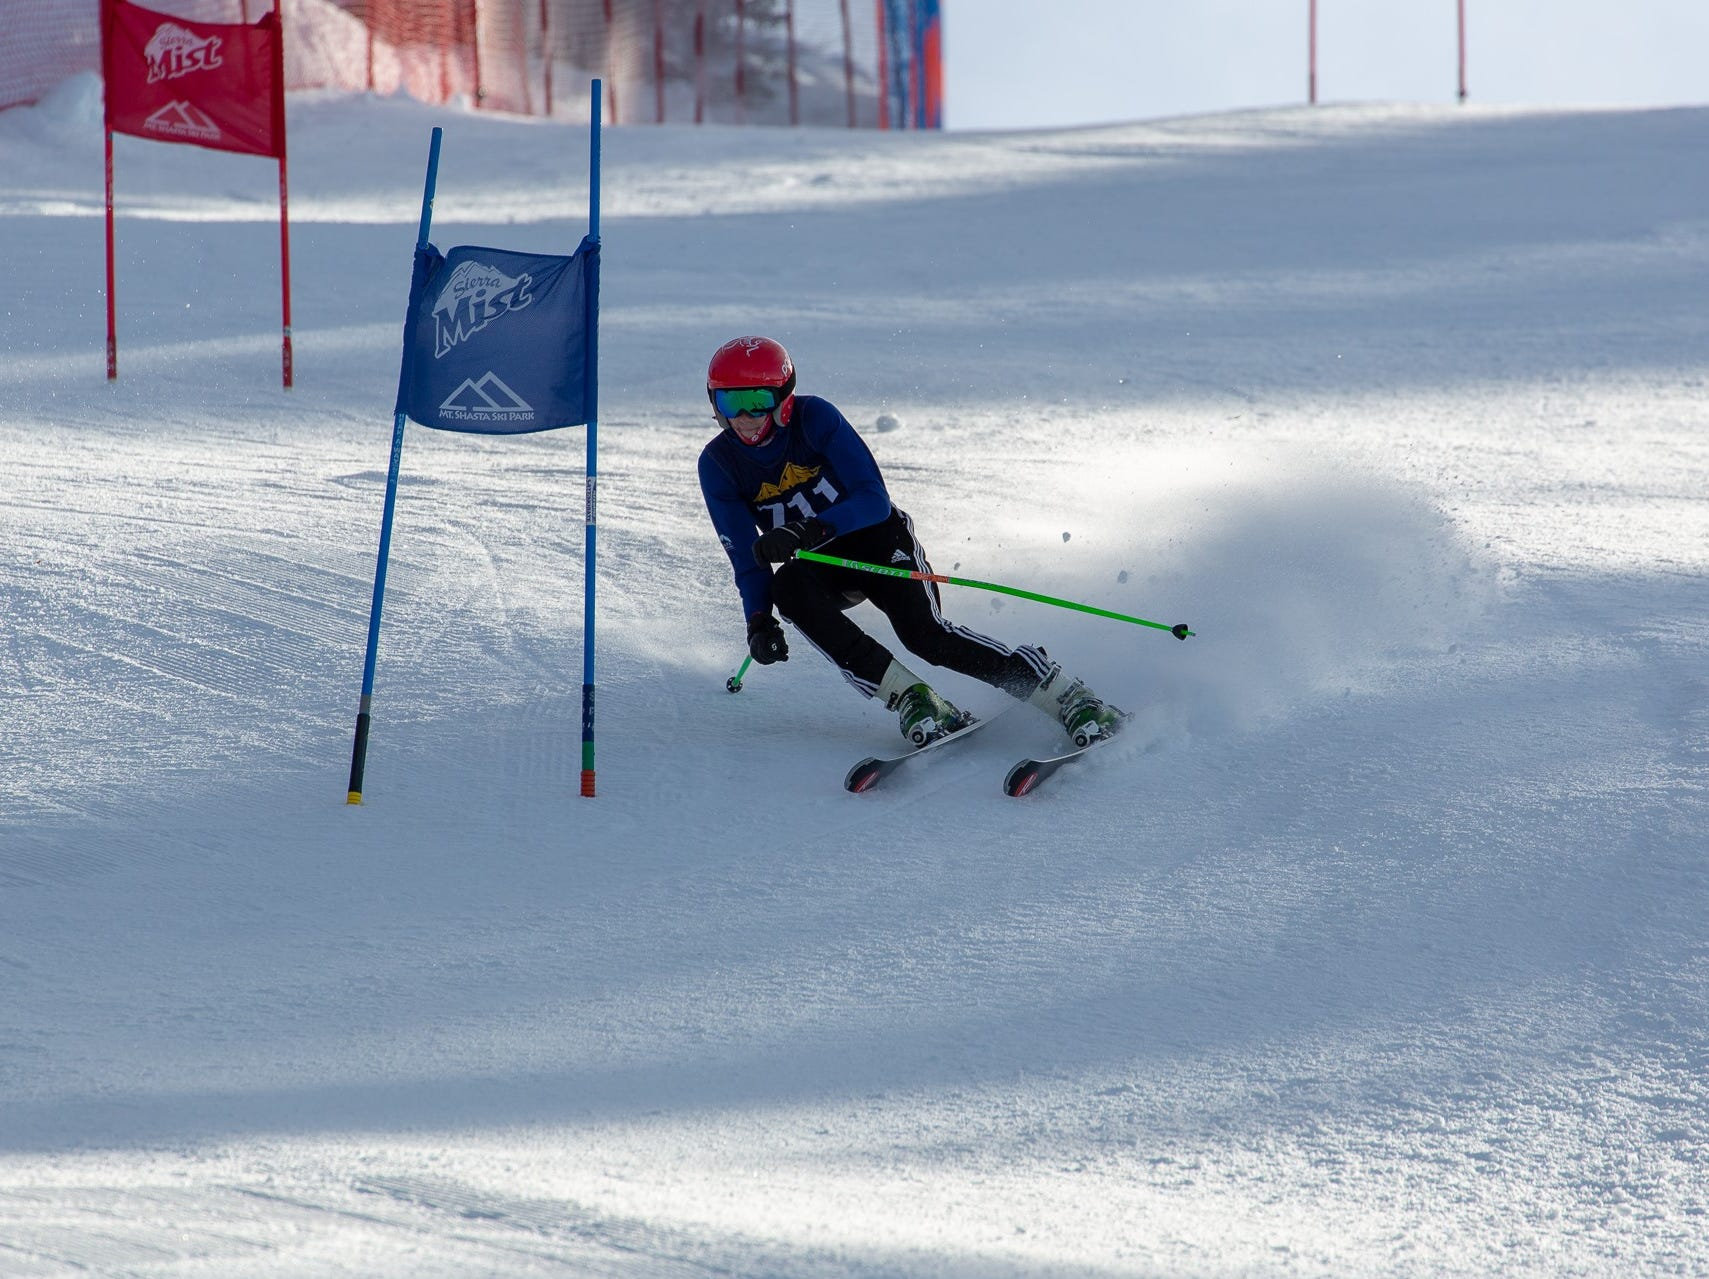 Ian Anderson of Mount Shasta competes in the first high school ski meet of 2019 on Monday, Jan. 14 at Mt. Shasta Ski Park.